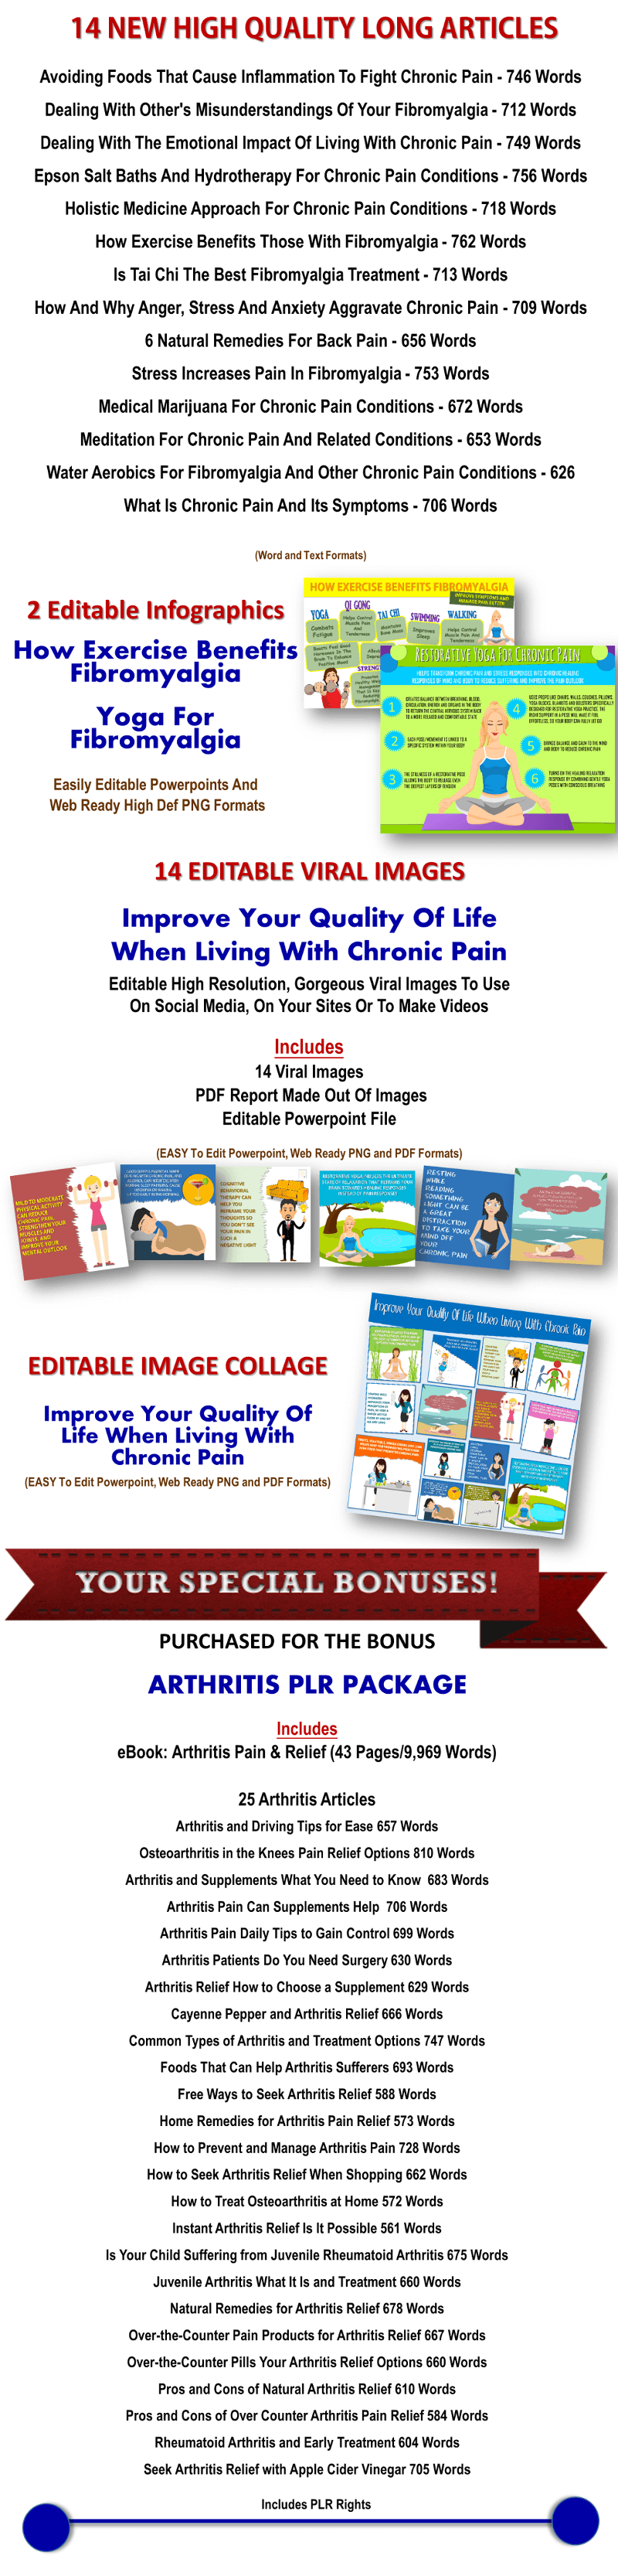 Giant Fibromyalgia/Chronic Pain PLR Pack